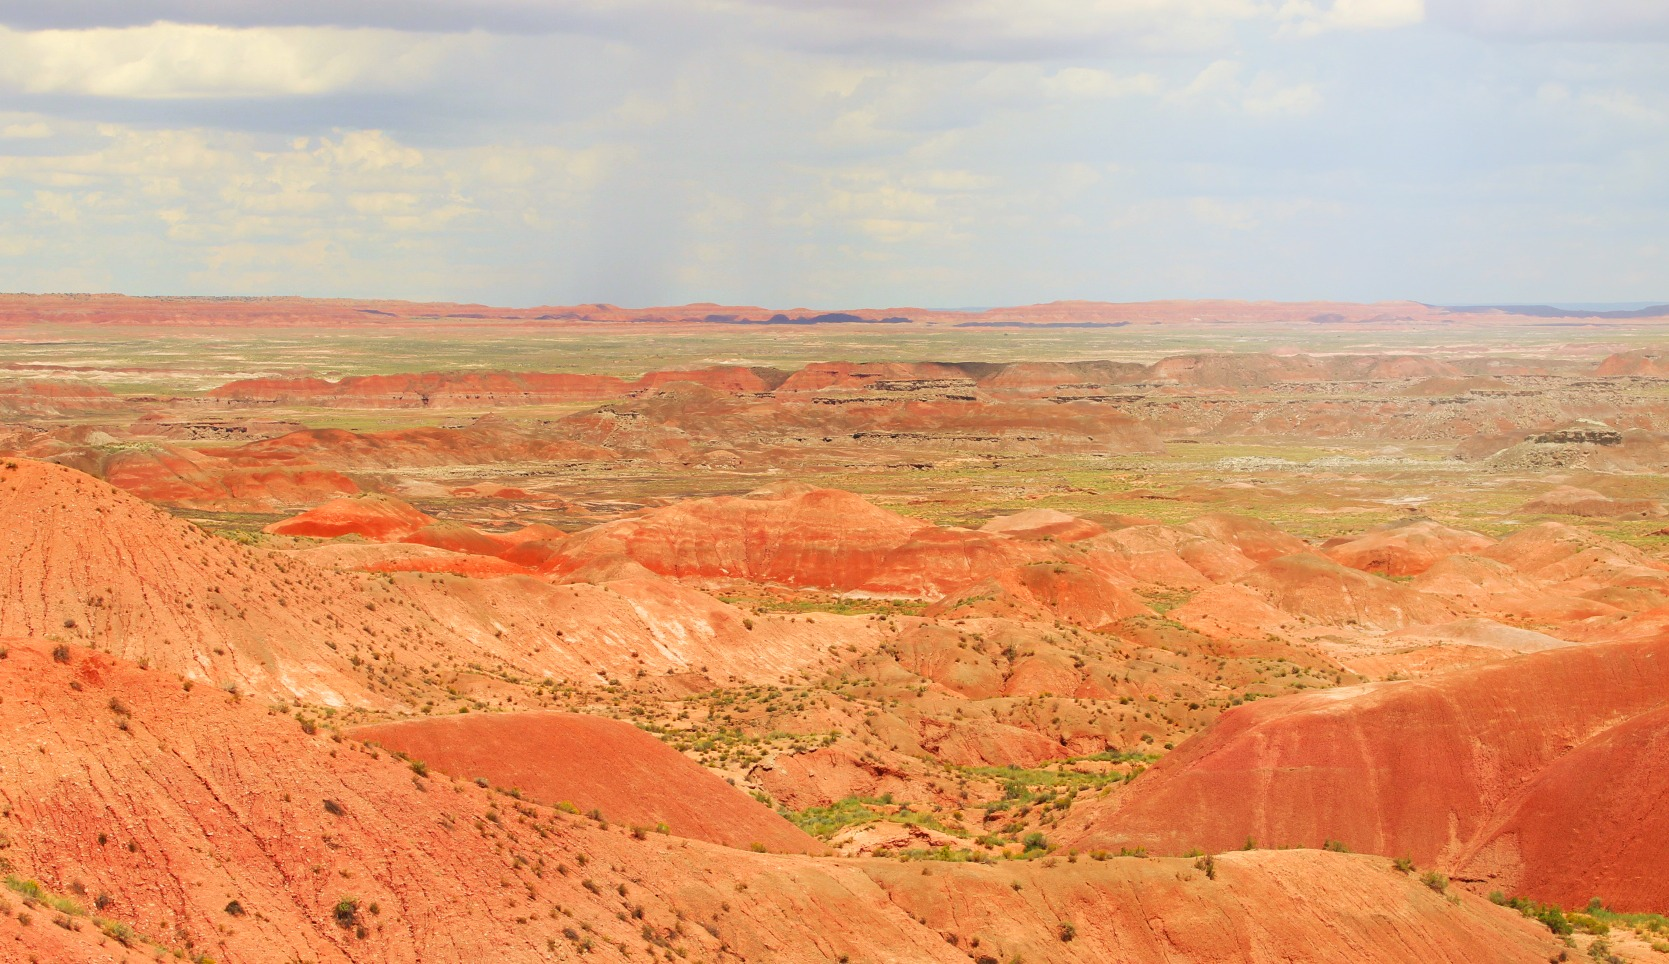 landscape view of the painted desert